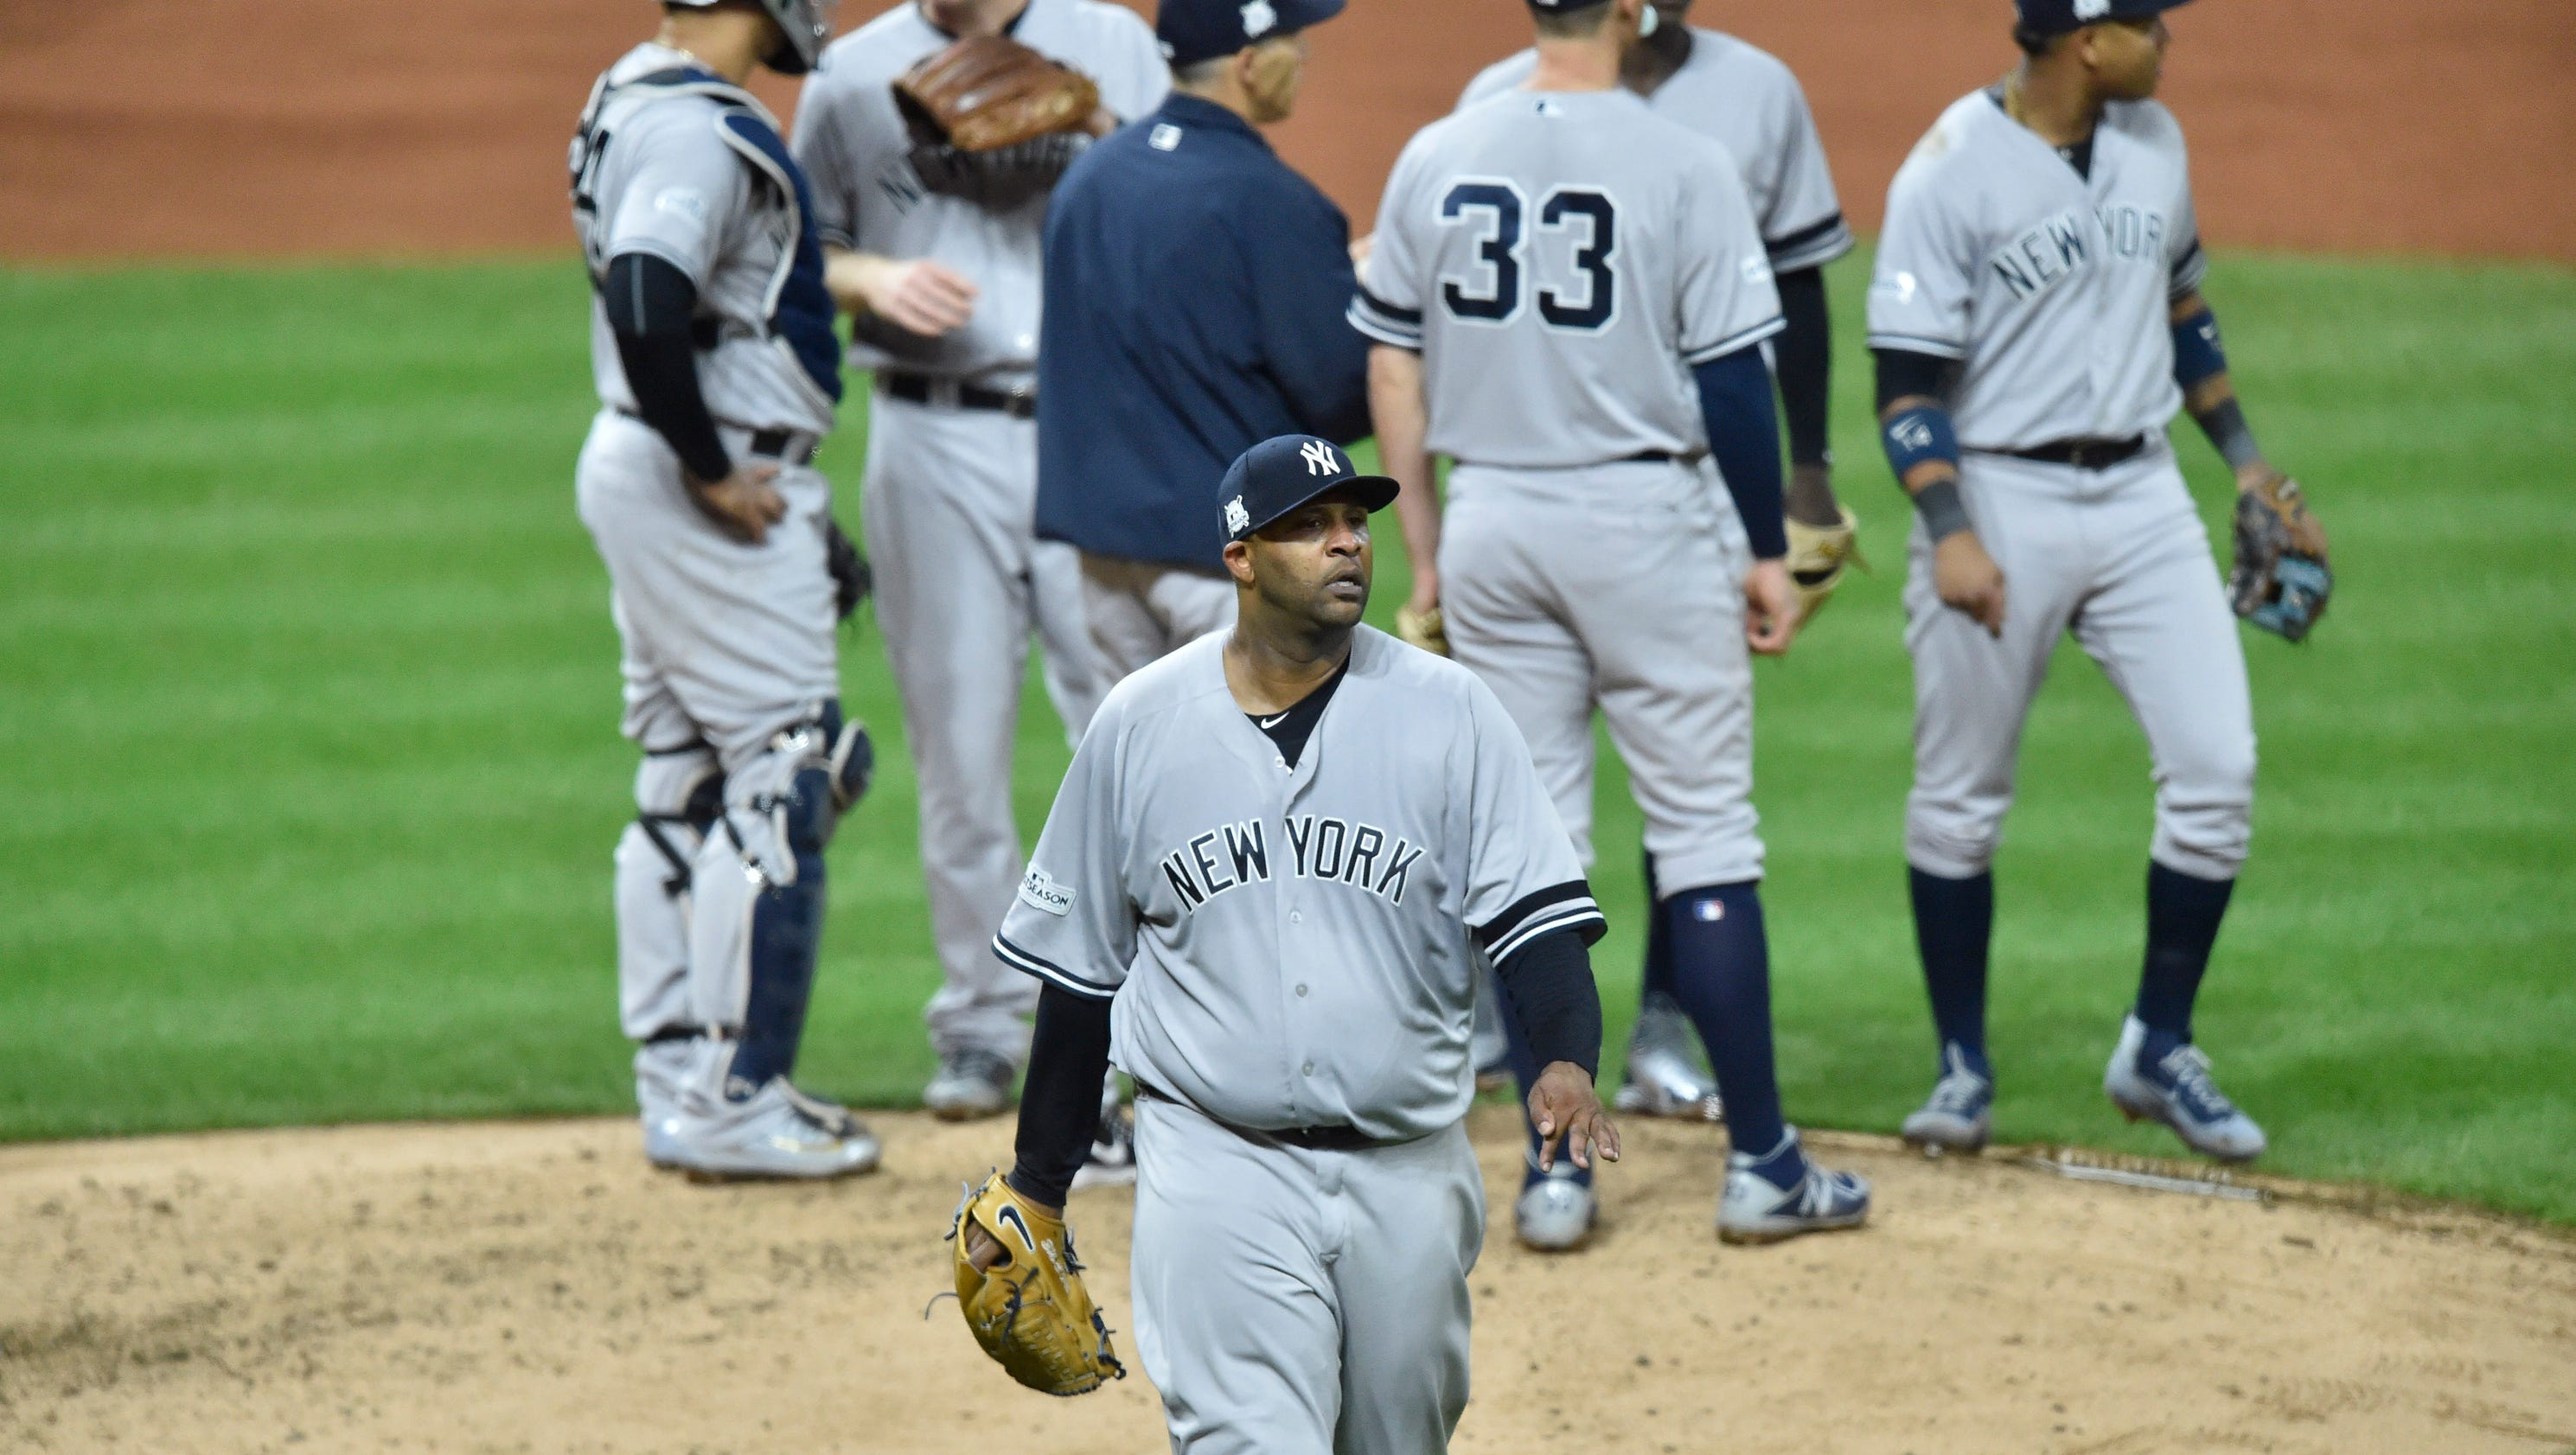 636433602116806830-usp-mlb-alds-new-york-yankees-at-cleveland-indian-94515833